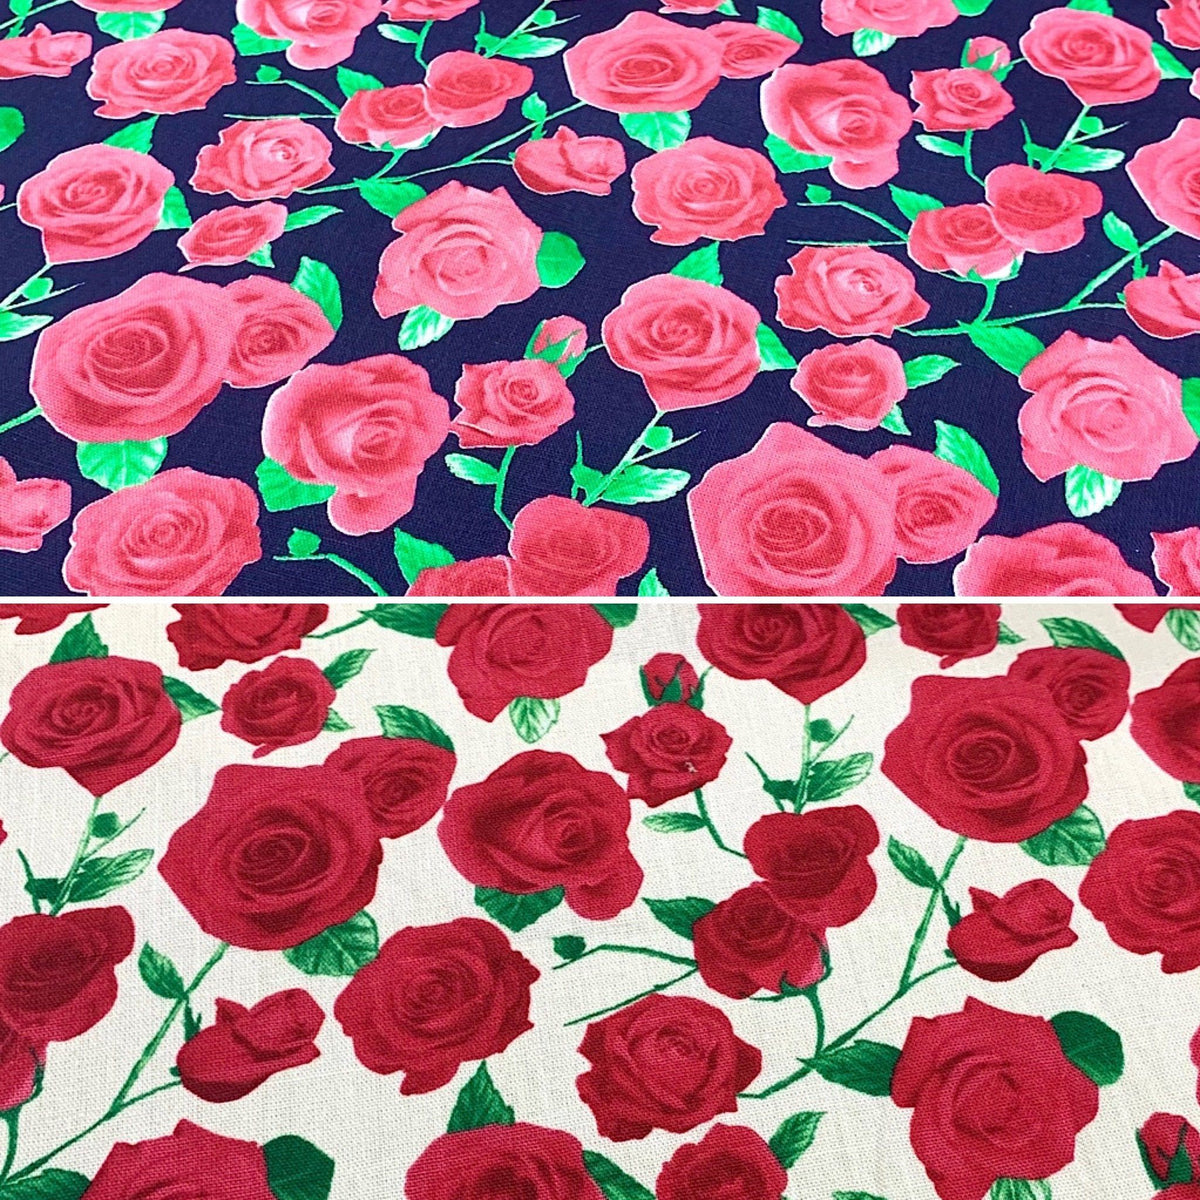 Anne's Roses Cotton Canvas Fabric